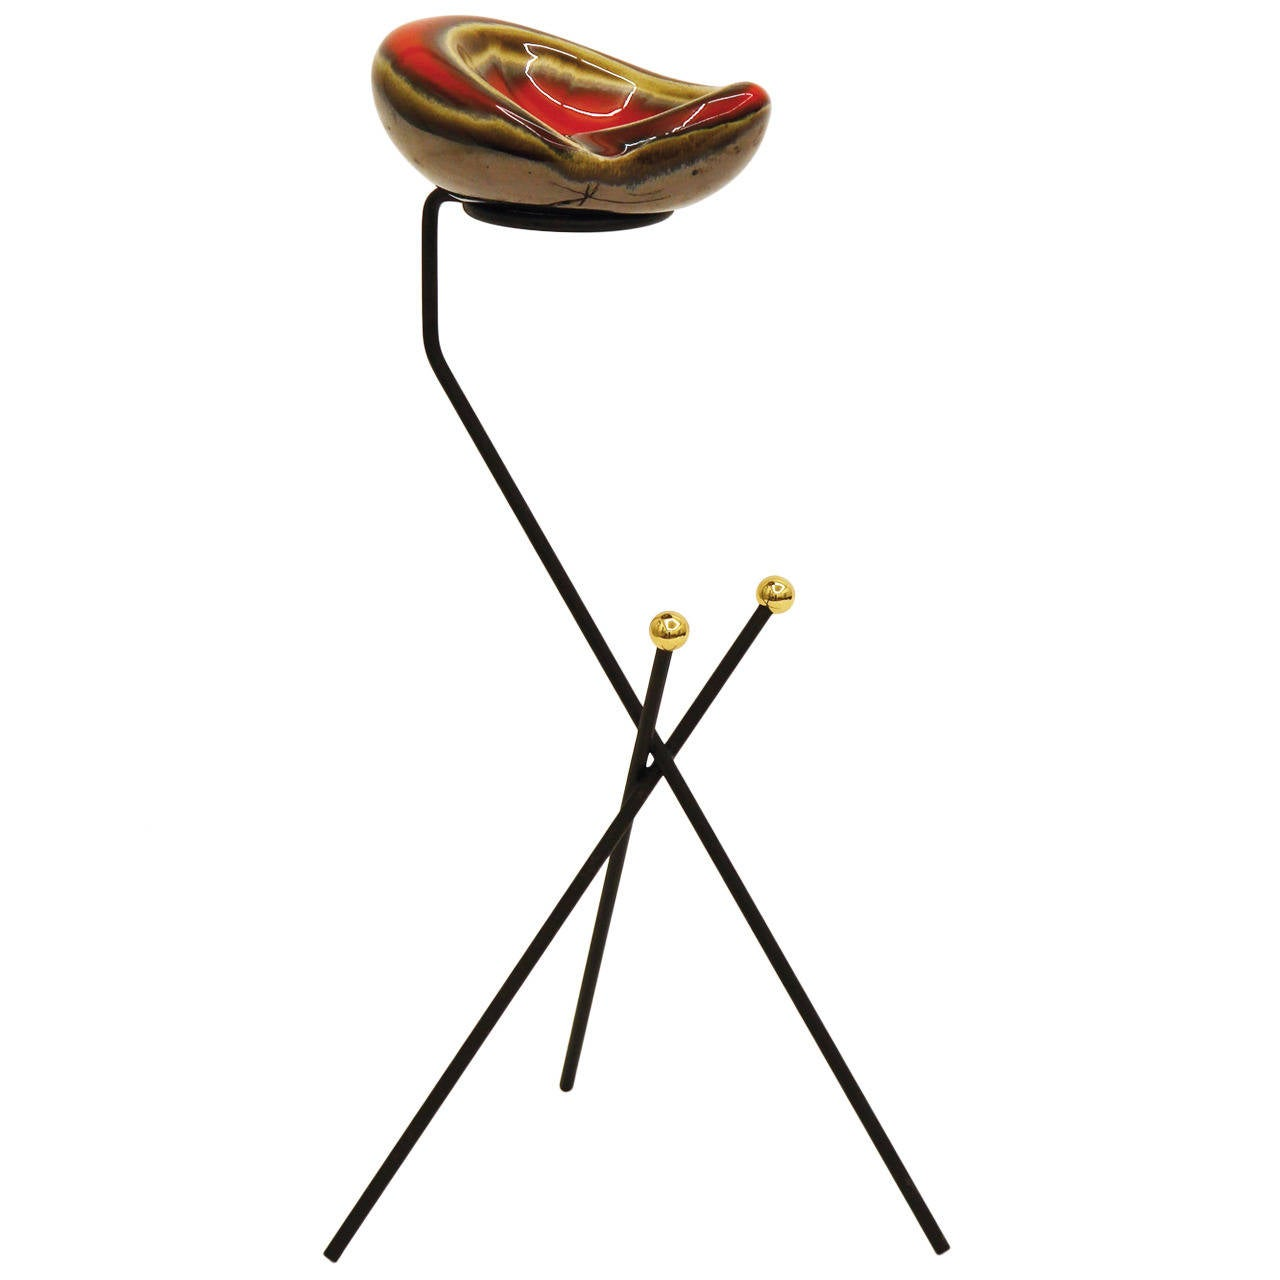 French Modernist Tripod Ashtray or Catch-All, 1950s